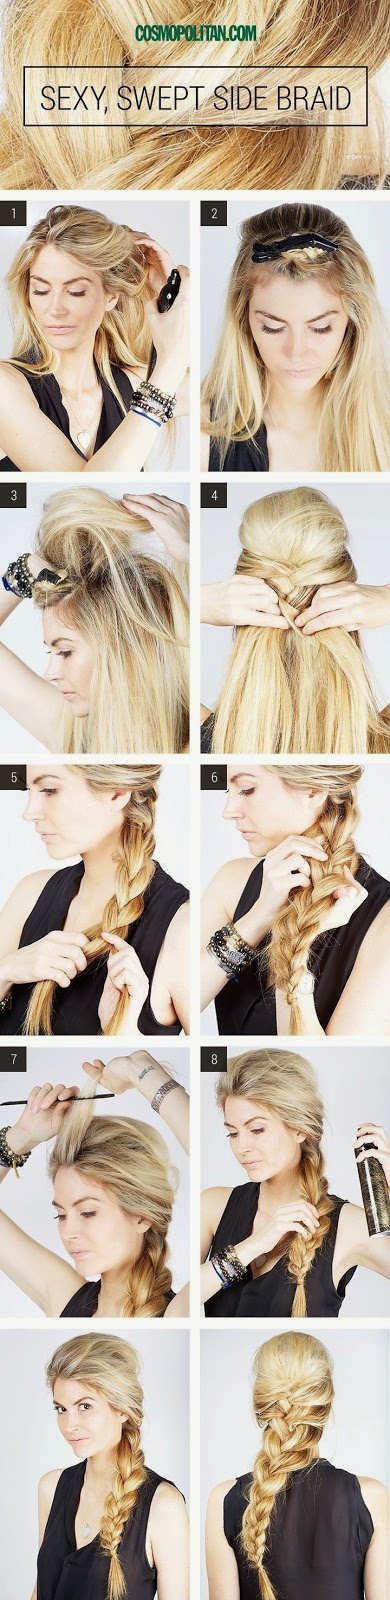 Gaya Rambut Sexy Swept Side Braid